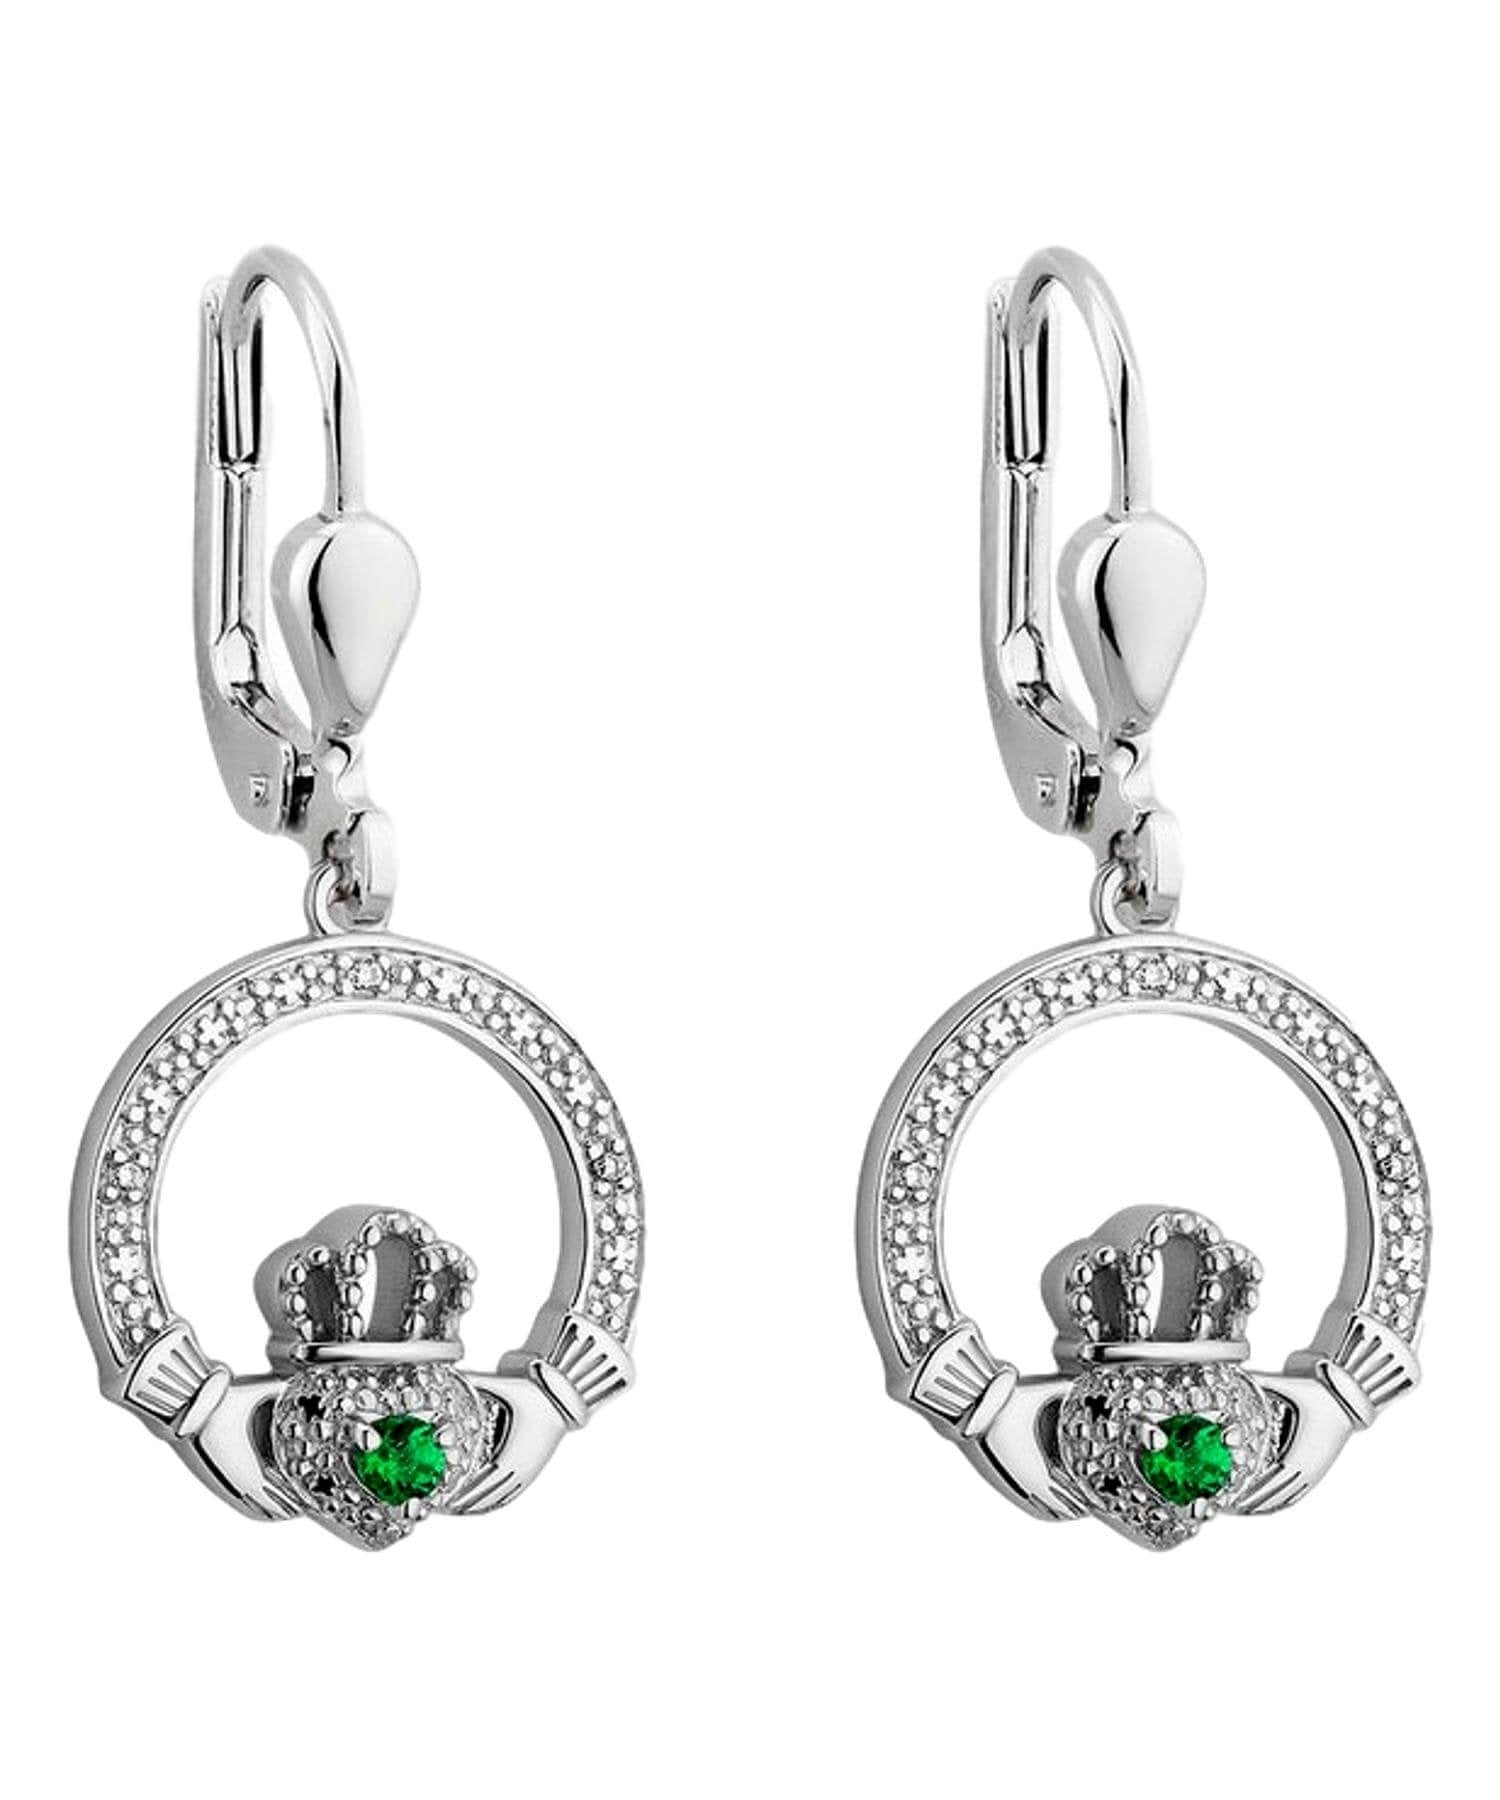 Crystal Claddagh Drop Earrings - [Solvar] - Jewellery - Irish Gifts